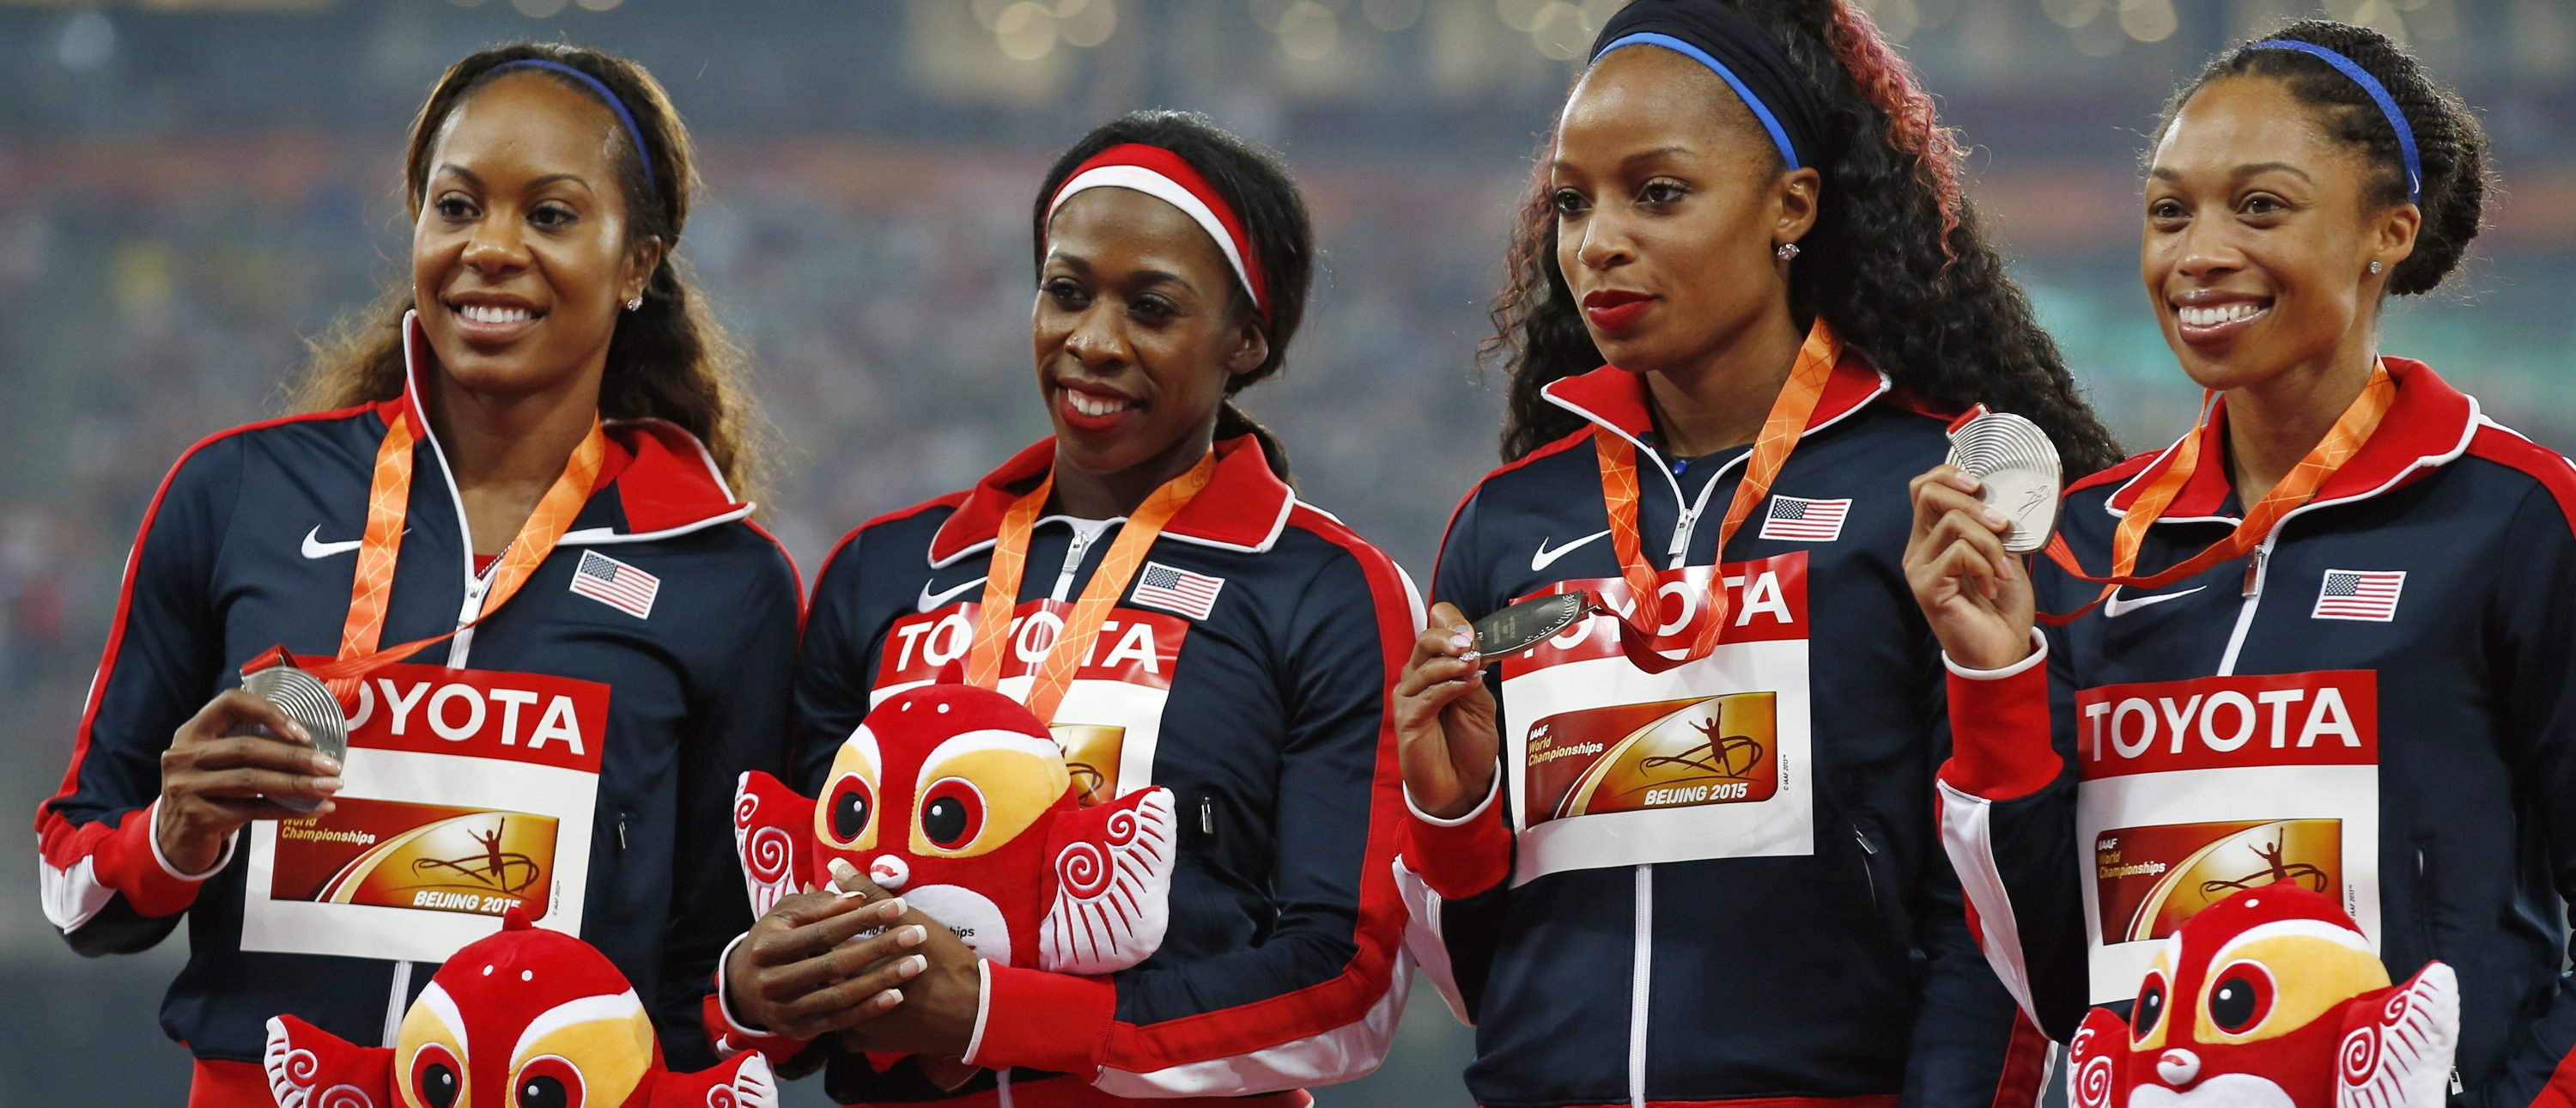 Second placed U.S. team Allyson Felix, Natasha Hastings, Francena McCorory, and Sanya Richards-Ross (R-L) present their silver medal as they pose on the podium after the women's 4 x 400 metres relay event during the 15th IAAF World Championships at the National Stadium in Beijing, China, August 30, 2015. REUTERS/Kim Kyung-Hoon - RTX1QA88